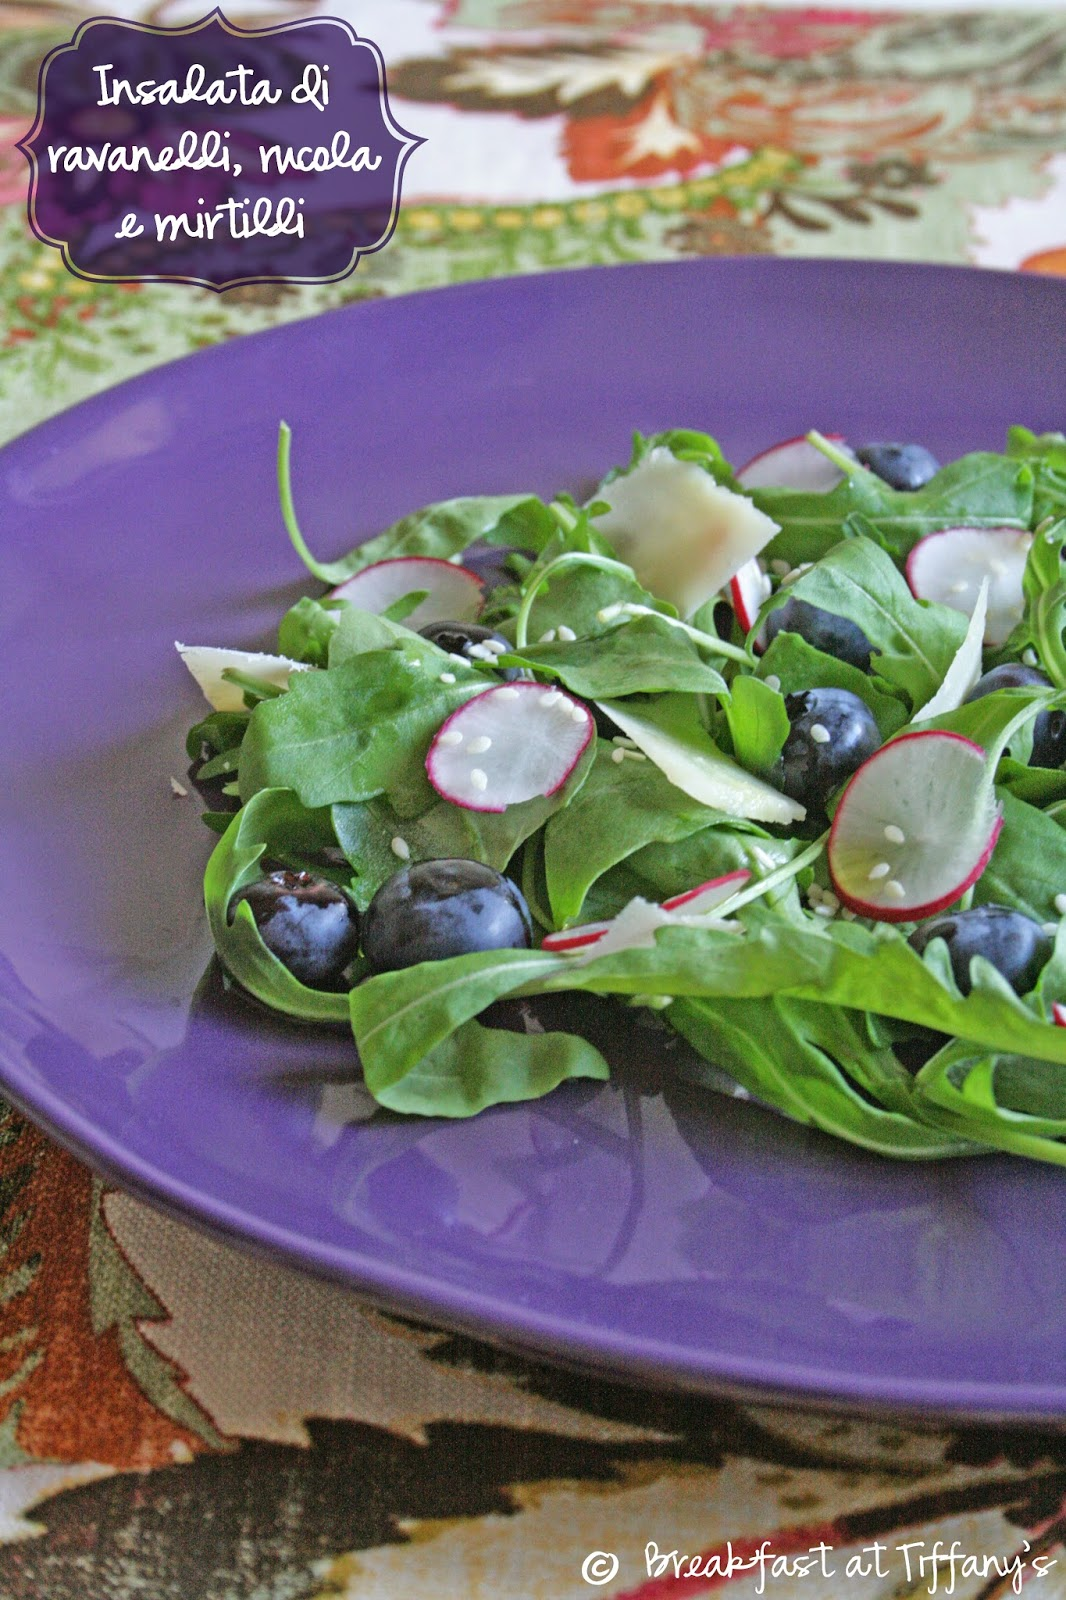 Insalata di ravanelli, rucola e mirtilli / Radishes, arugula and blueberries salad